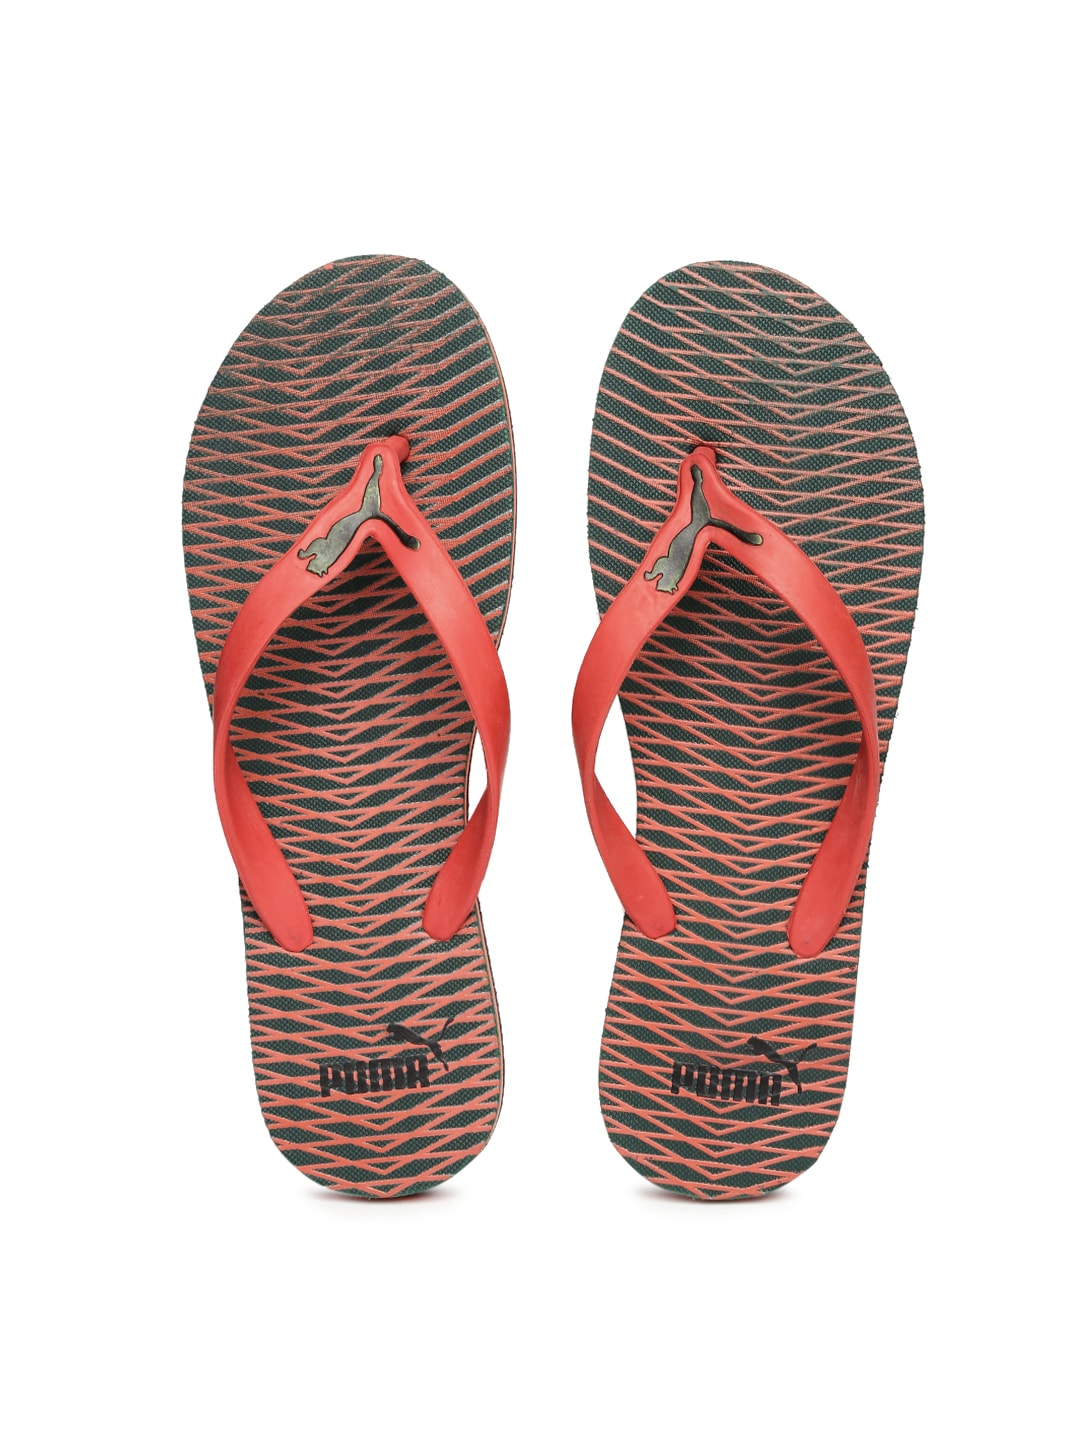 3147abfadc8c Puma 36325702 Men Red And Green Printed Graphic Flip Flops- Price in India